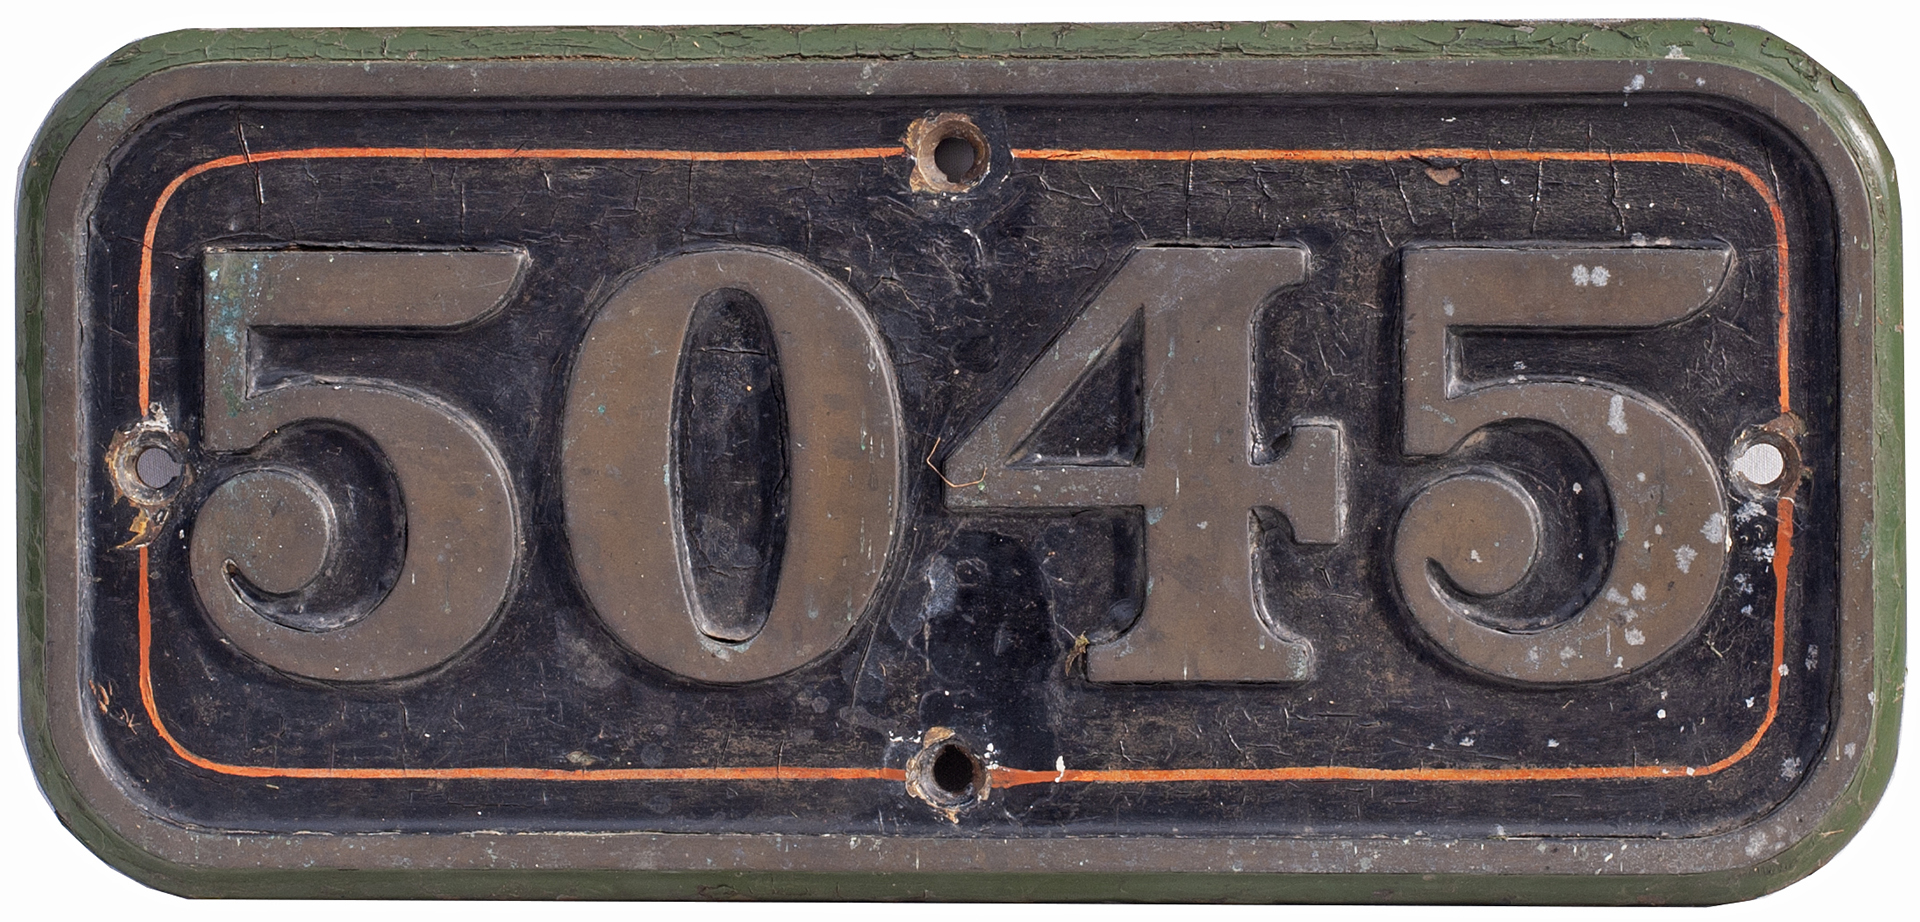 GWR brass cabside numberplate 5045 ex Collett Castle Class 4-6-0 built at Swindon in 1936 and